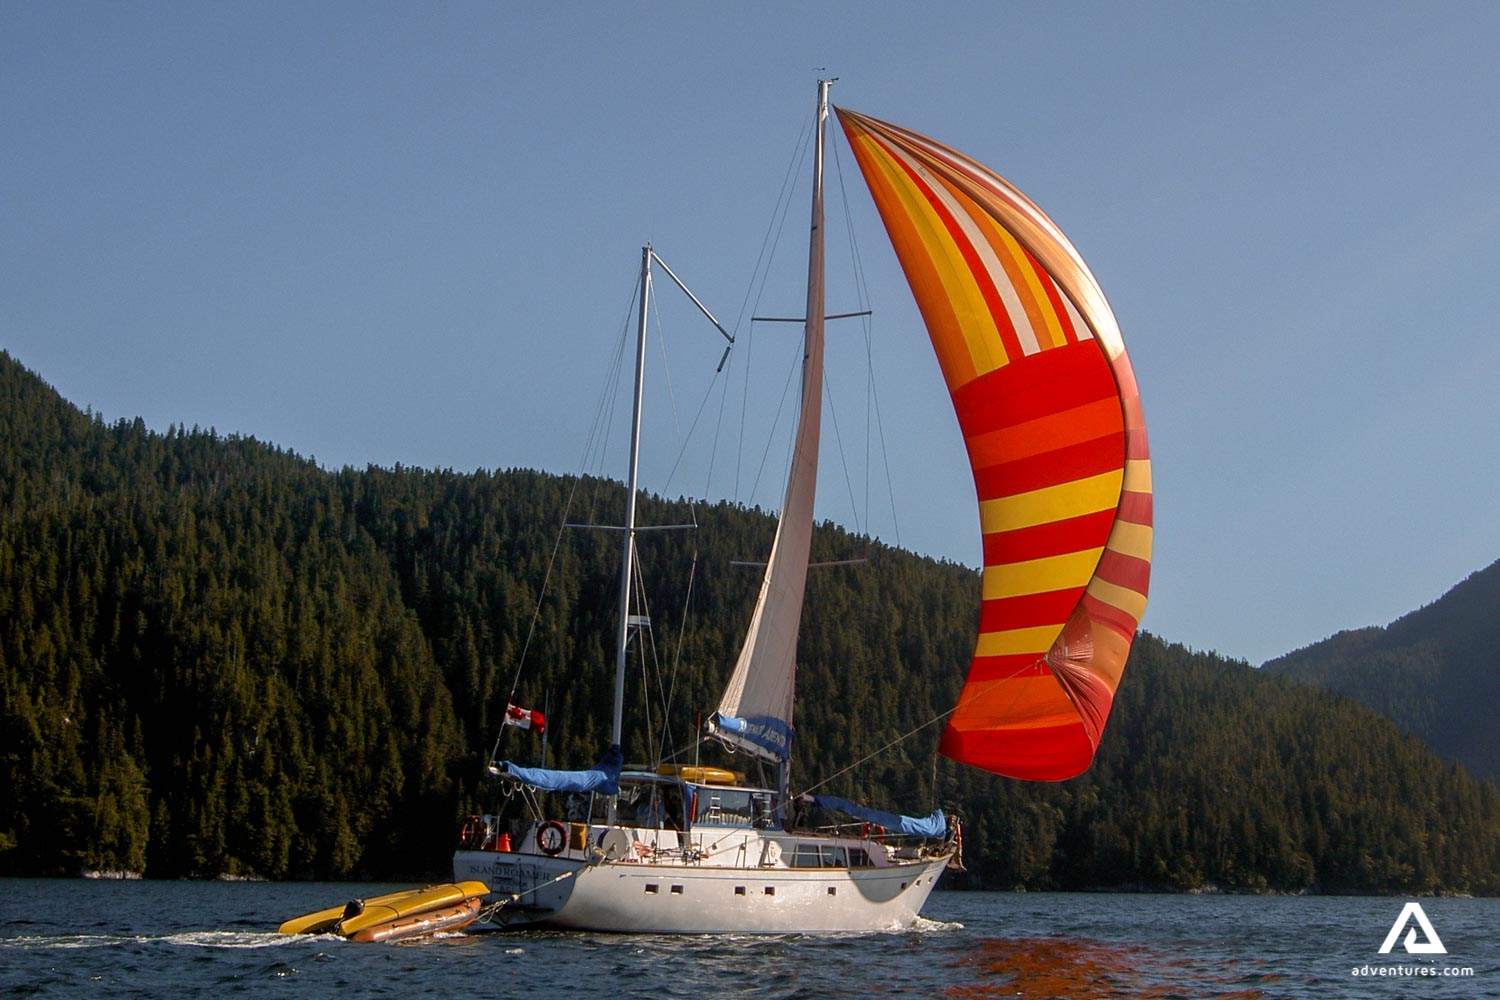 Sailing boat with a colorful sail